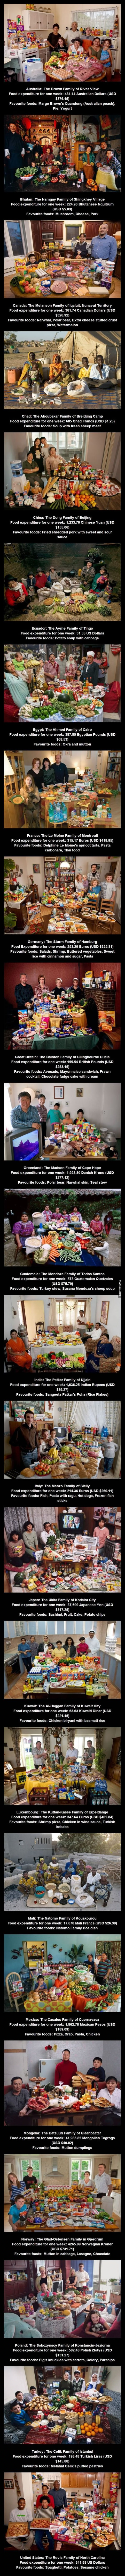 Families From Around The World With Their Weekly Food Supplies